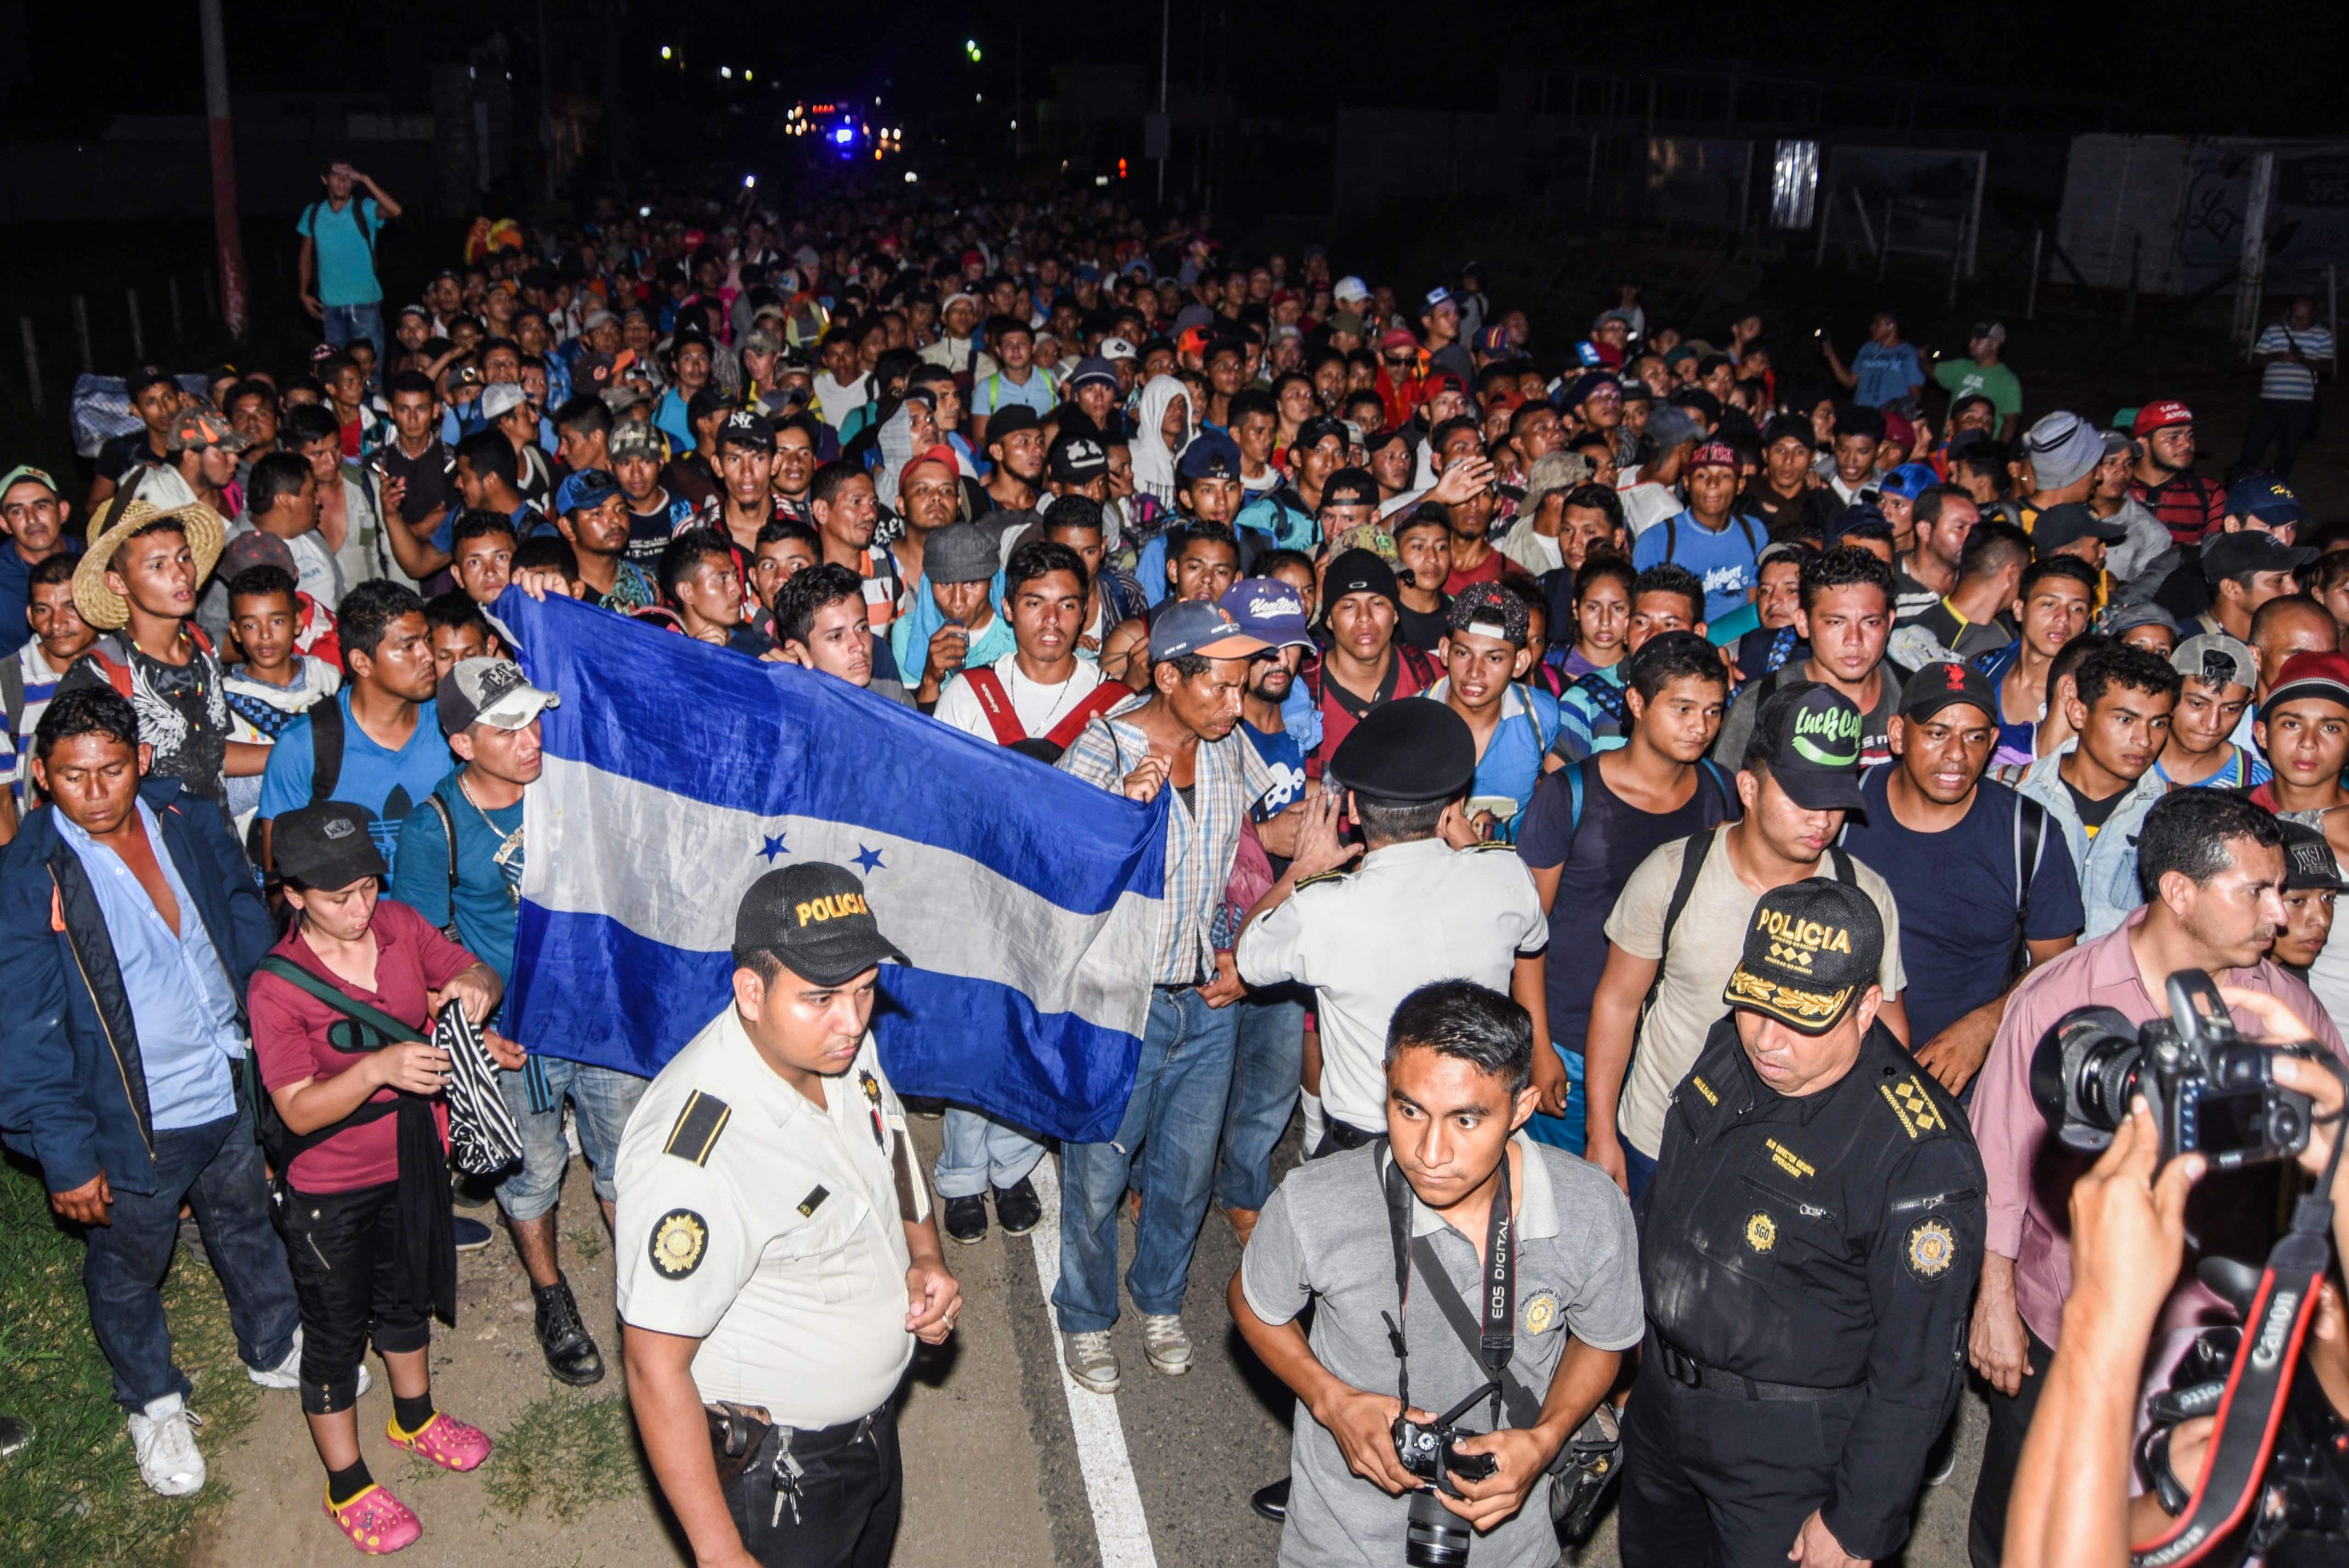 TOPSHOT - Honduran migrants taking part in a new caravan heading to the US, arrive to Chiquimula, Guatemala, on October 22, 2018. - US President Donald Trump on Monday called the migrant caravan heading toward the US-Mexico border a national emergency, saying he has alerted the US border patrol and military. (ORLANDO ESTRADA/AFP/Getty Images)